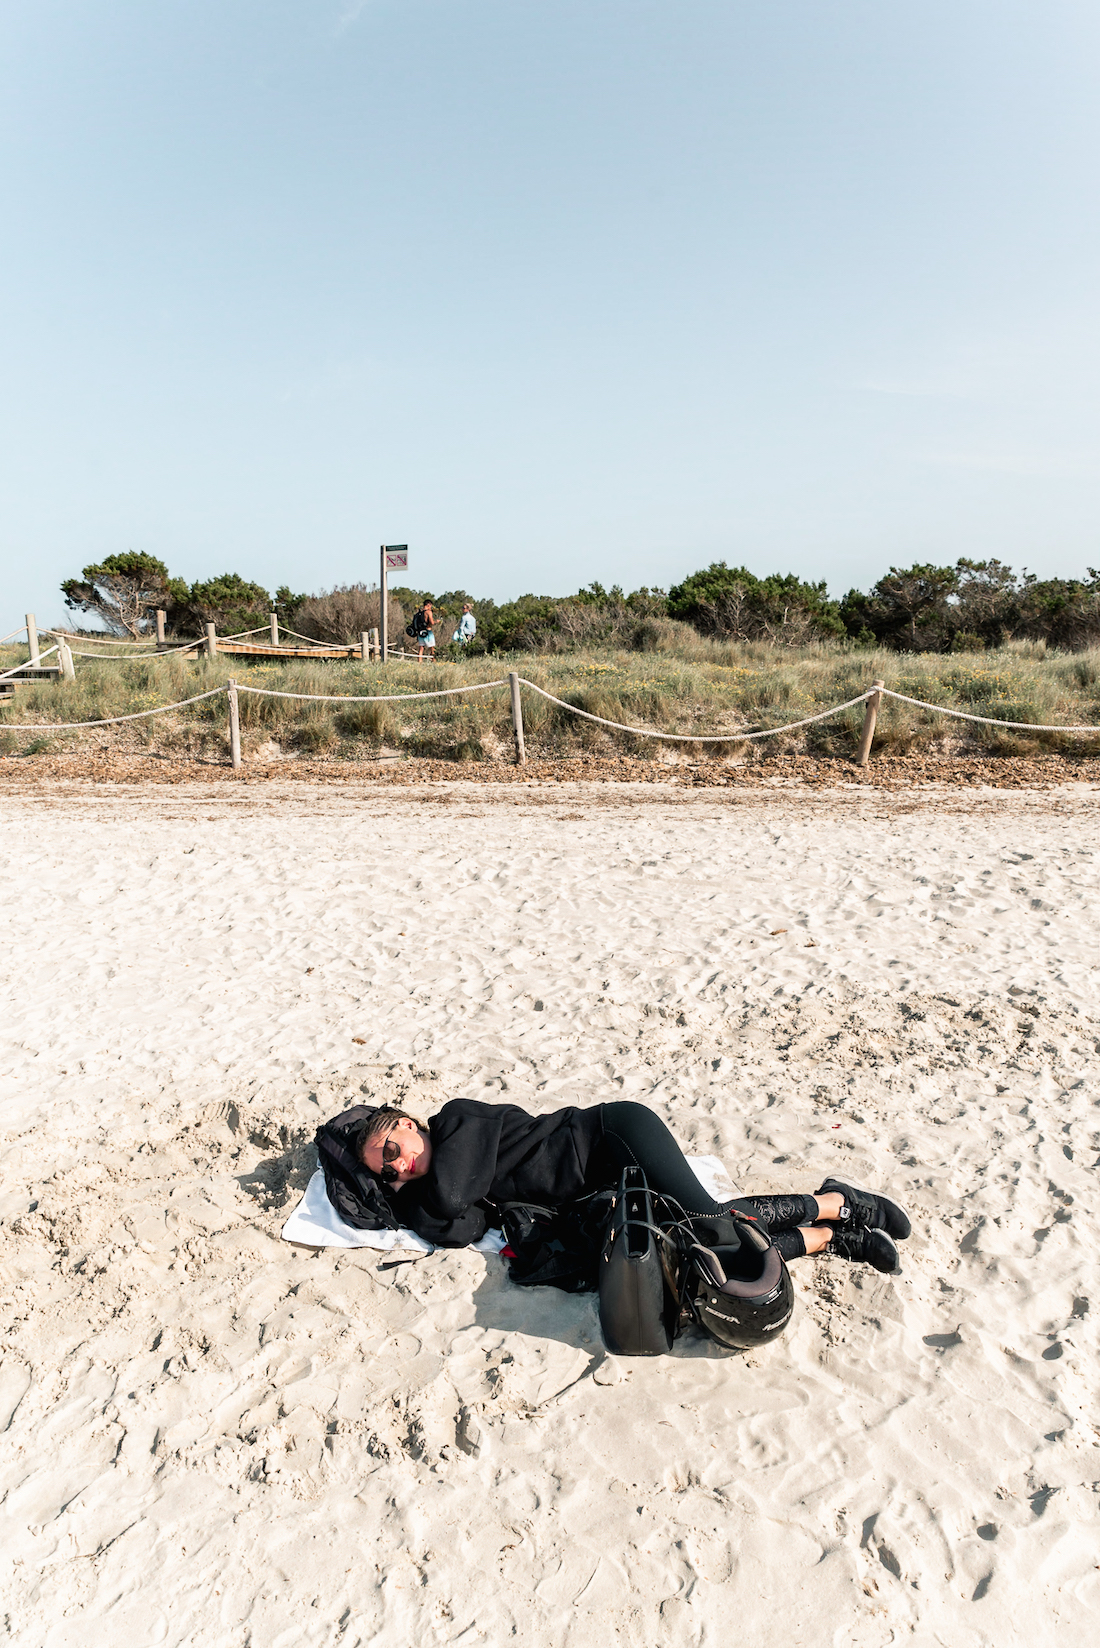 Sleeping on the beach in Formentera, Spain